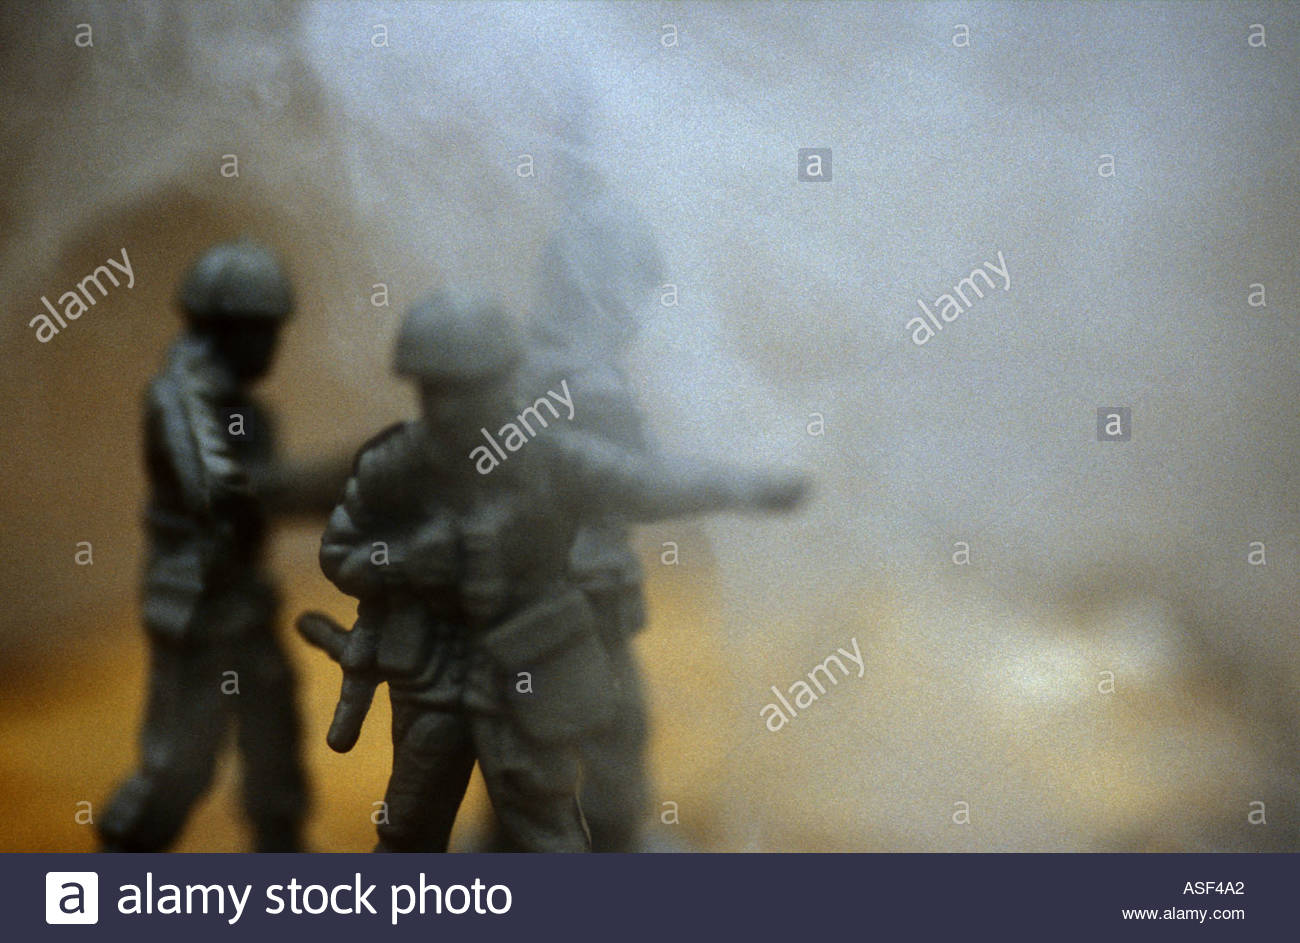 Soldier Giving Orders while others observe - Stock Image